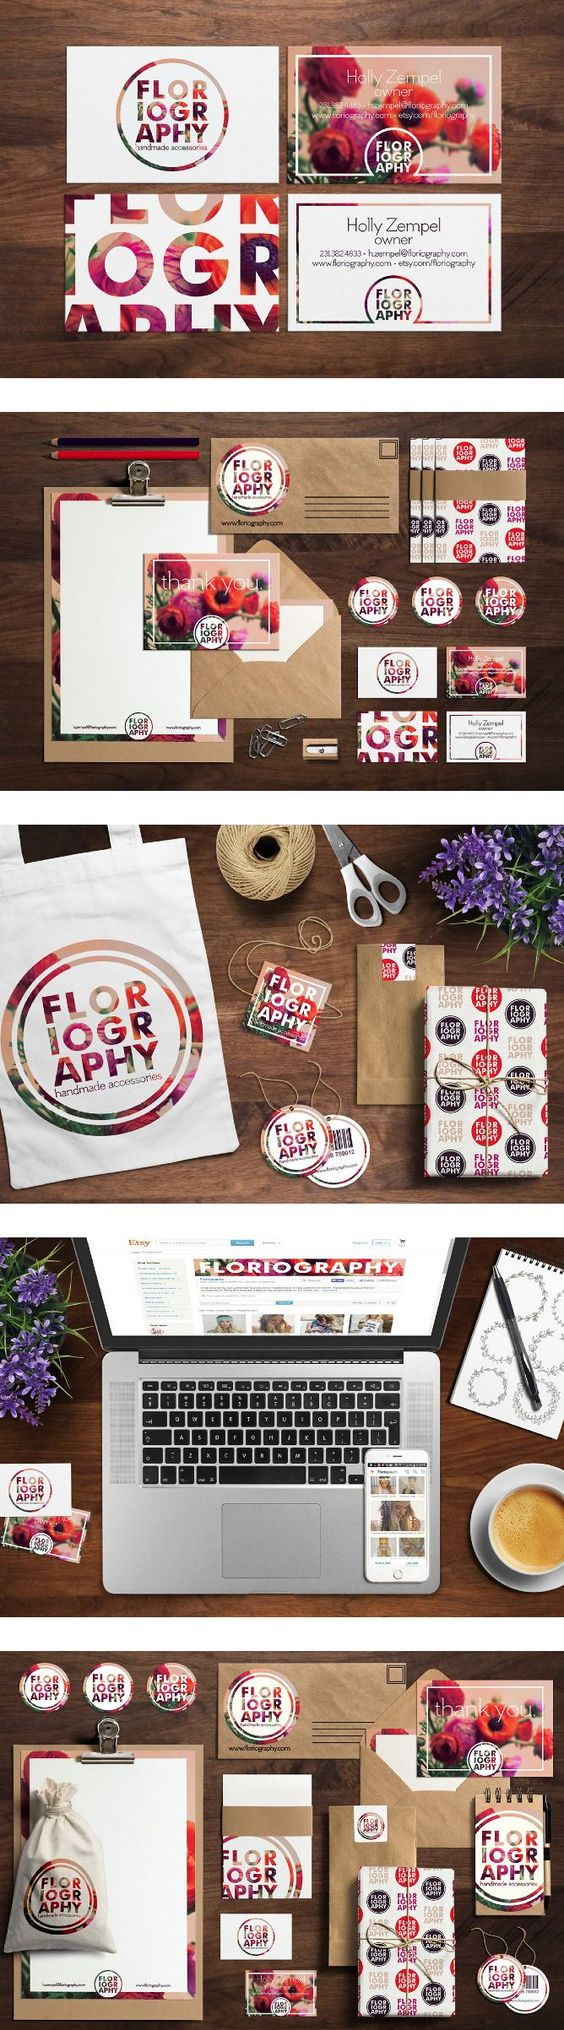 Floriography branding by Amanda Jewell. Beautifully crafted one-of-a-kind pieces include silk flower head-dresses and bracelets, body chains and chain crowns. PD